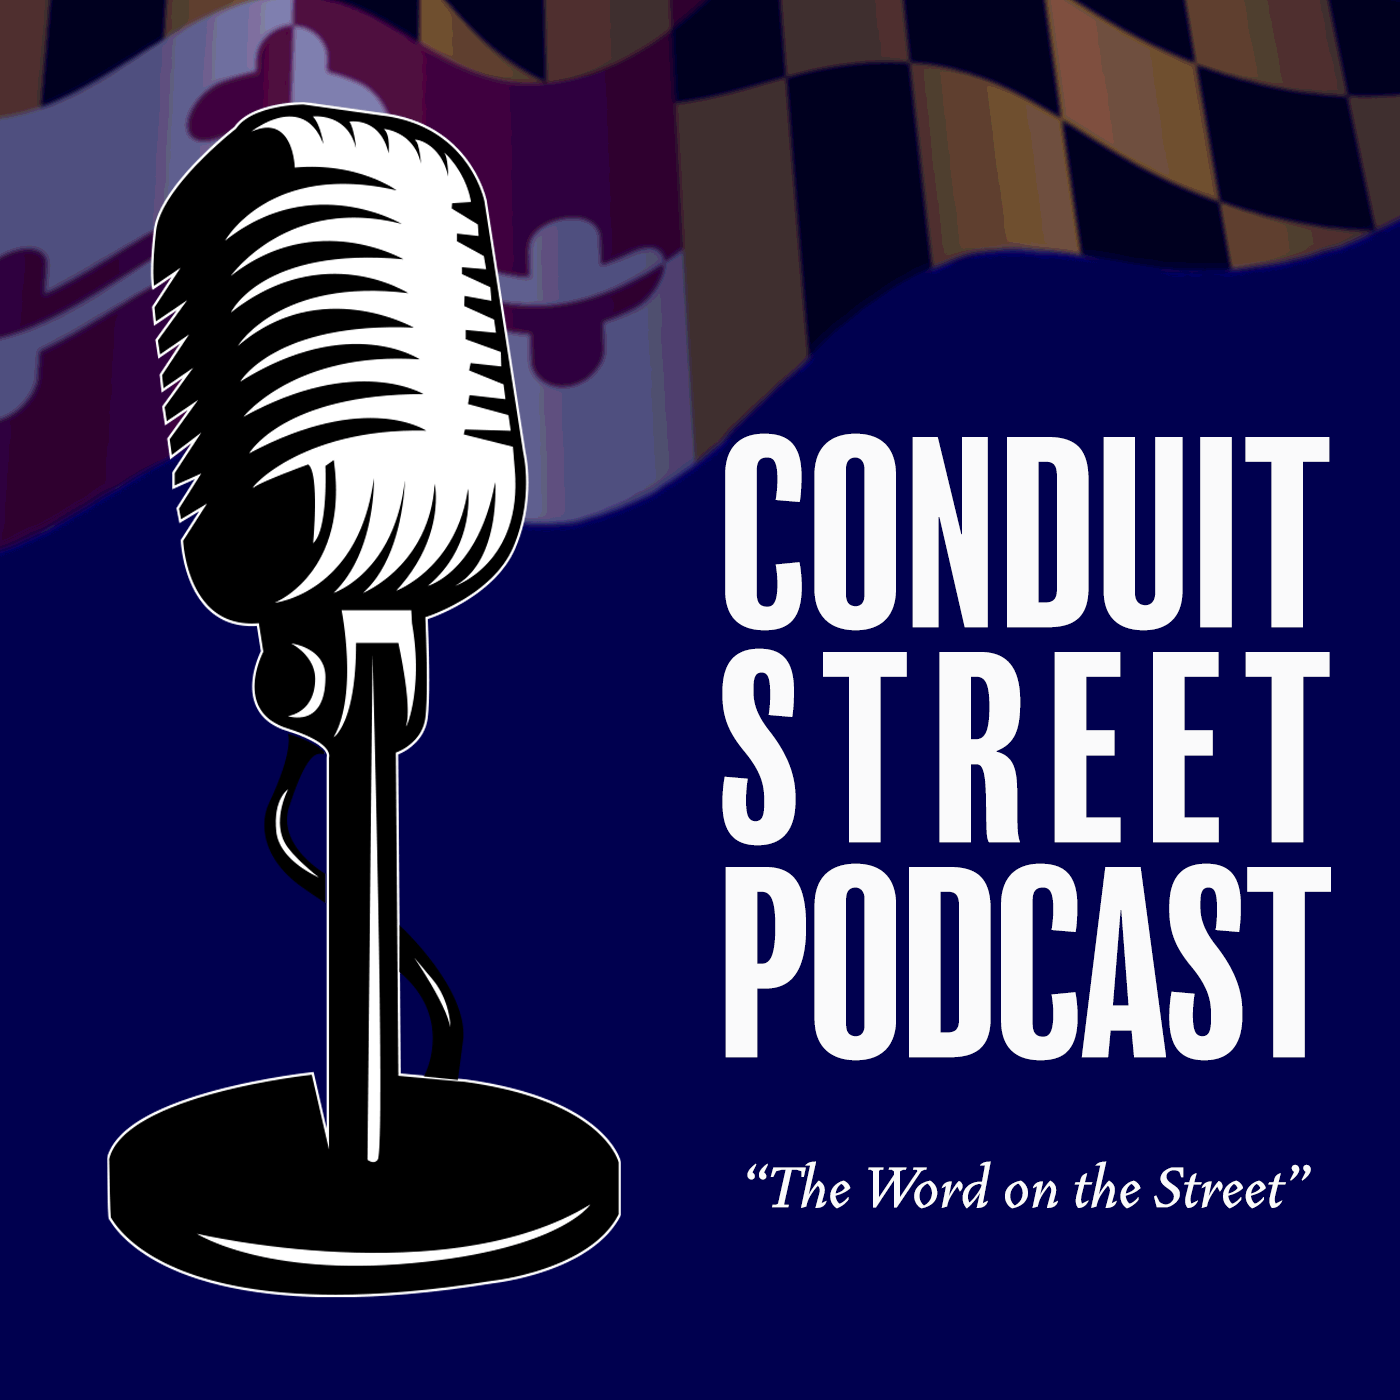 Conduit Street Podcast: Standing On a Corner, With a Friend From Arizona